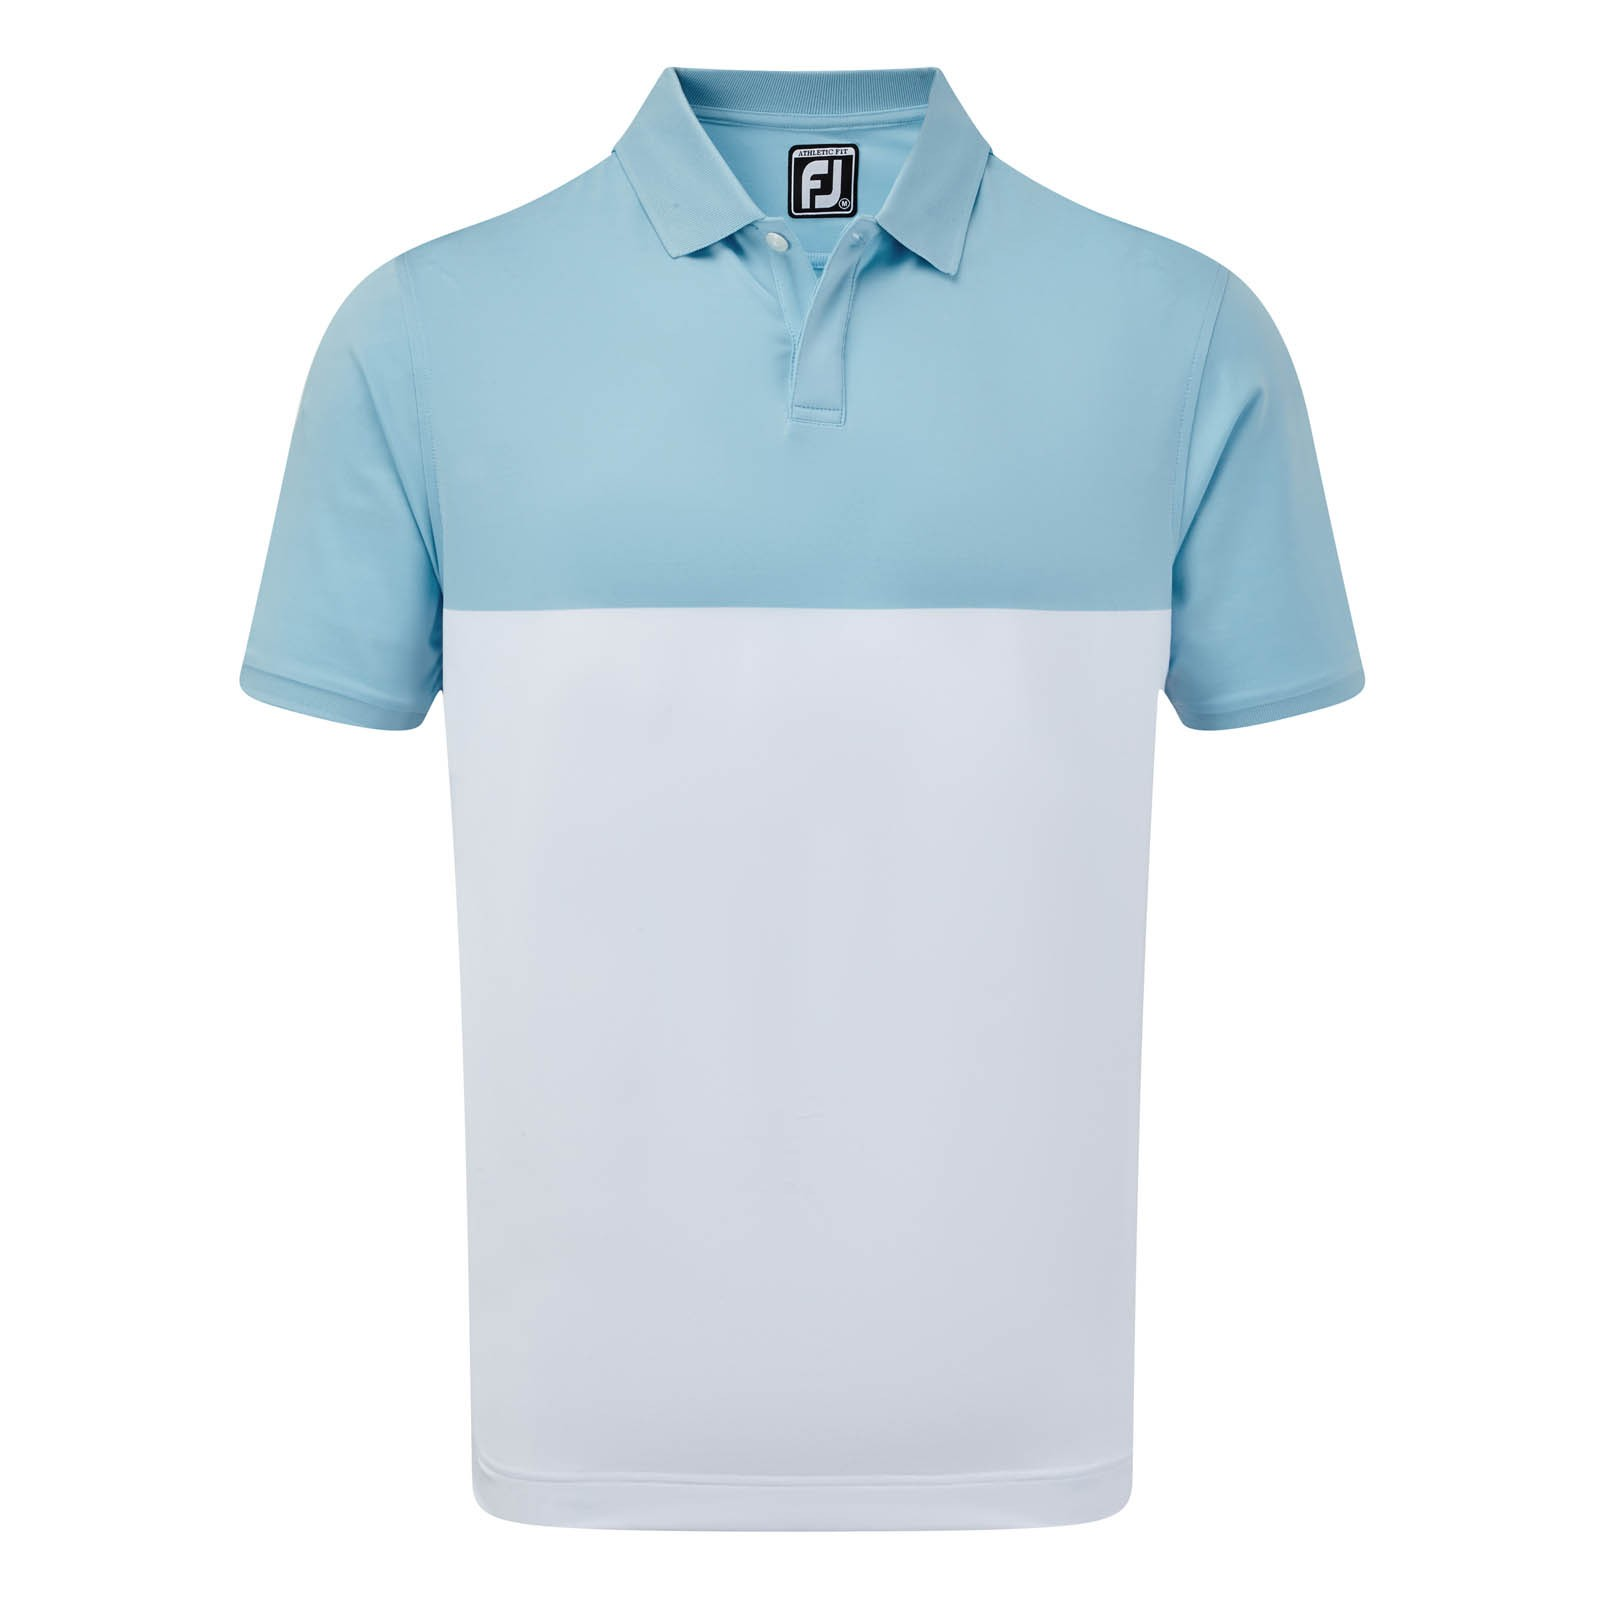 Footjoy Stretch Lisle Engineered Colour Block Polo